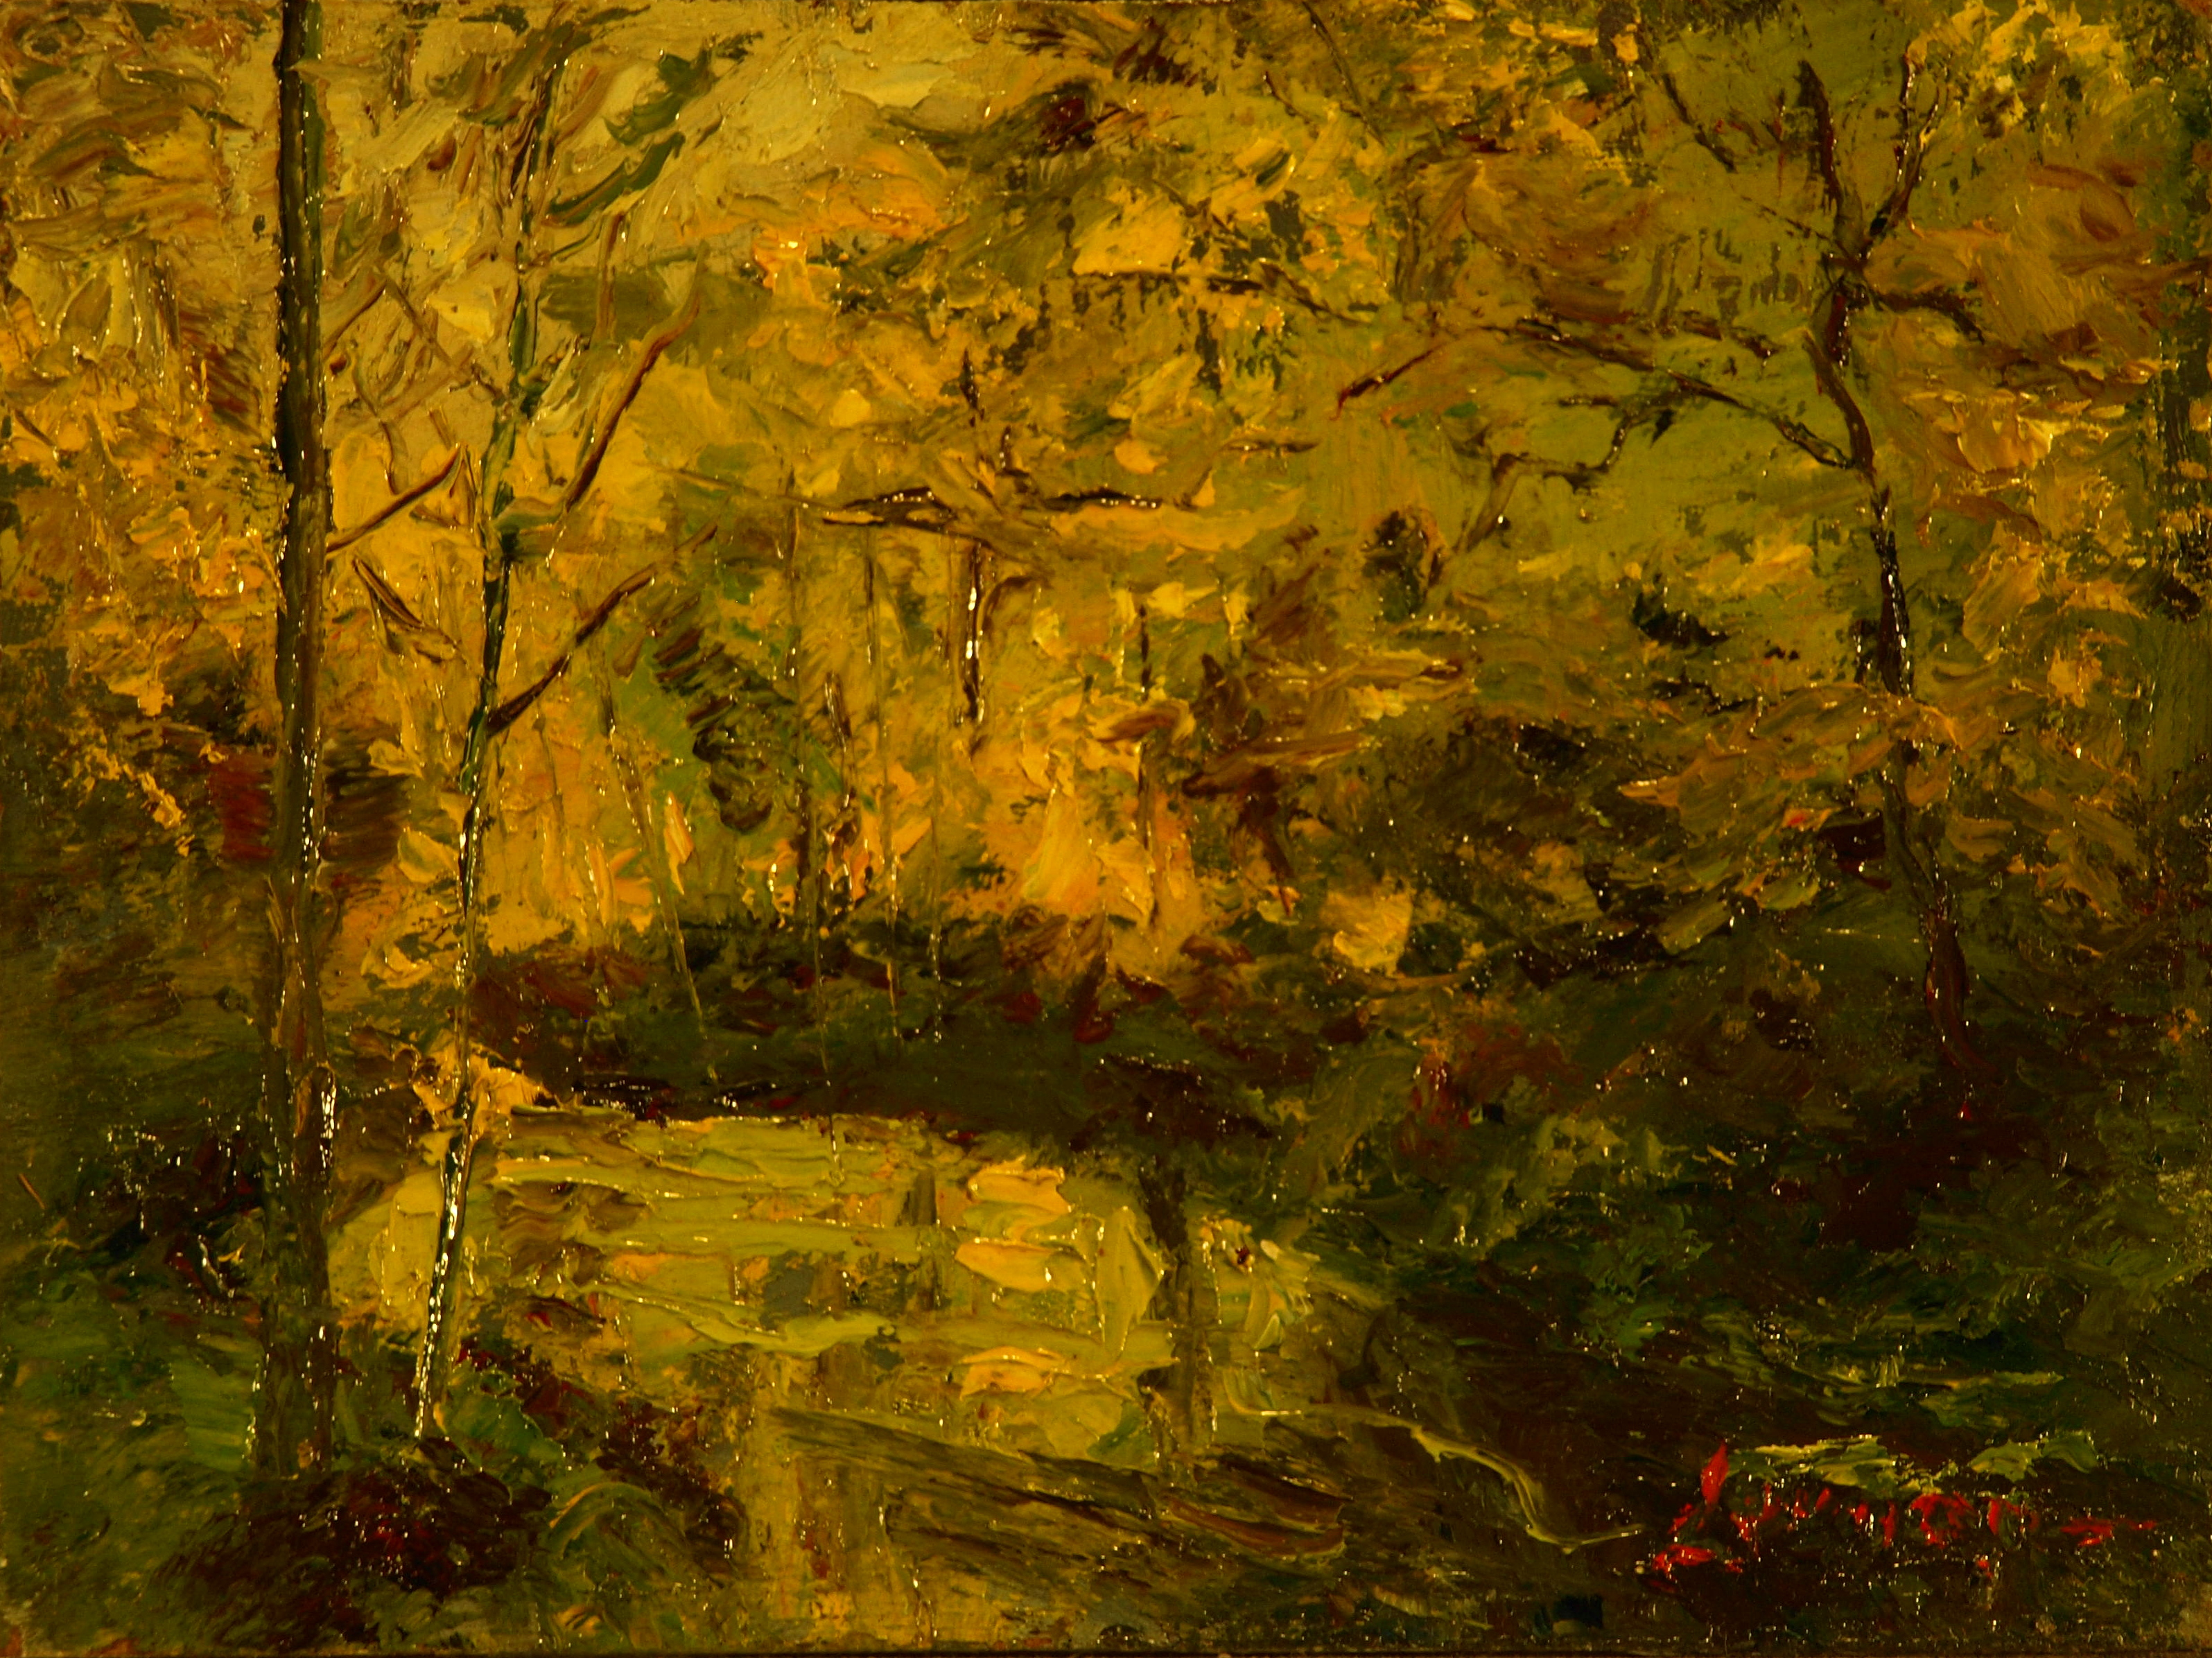 Spring by the Brook, Oil on Panel, 6 x 8 Inches, by Bernard Lennon, $175